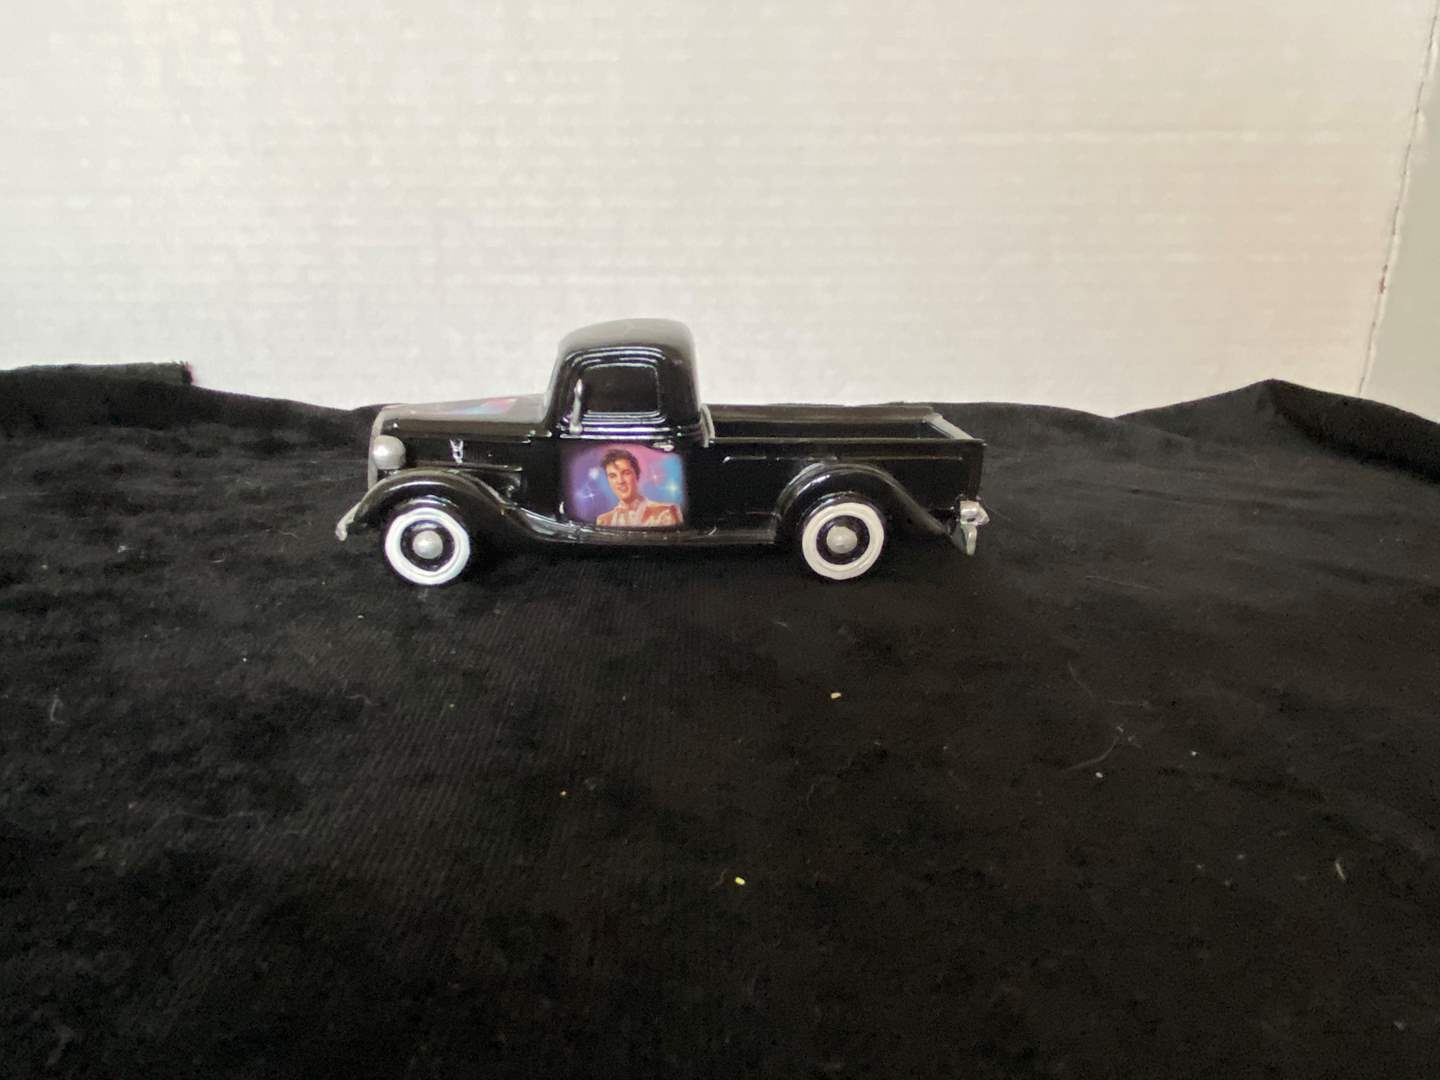 Lot # 257 Hamilton Collection Trucks - 1:36 Scale - #1 Rock N' Rolling With Elvis